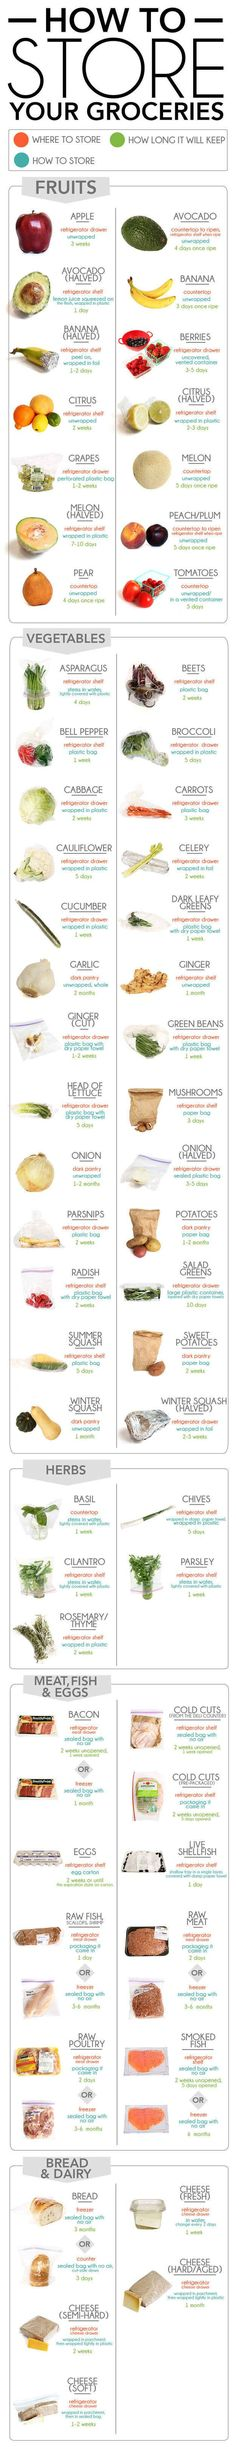 For not wasting your groceries: